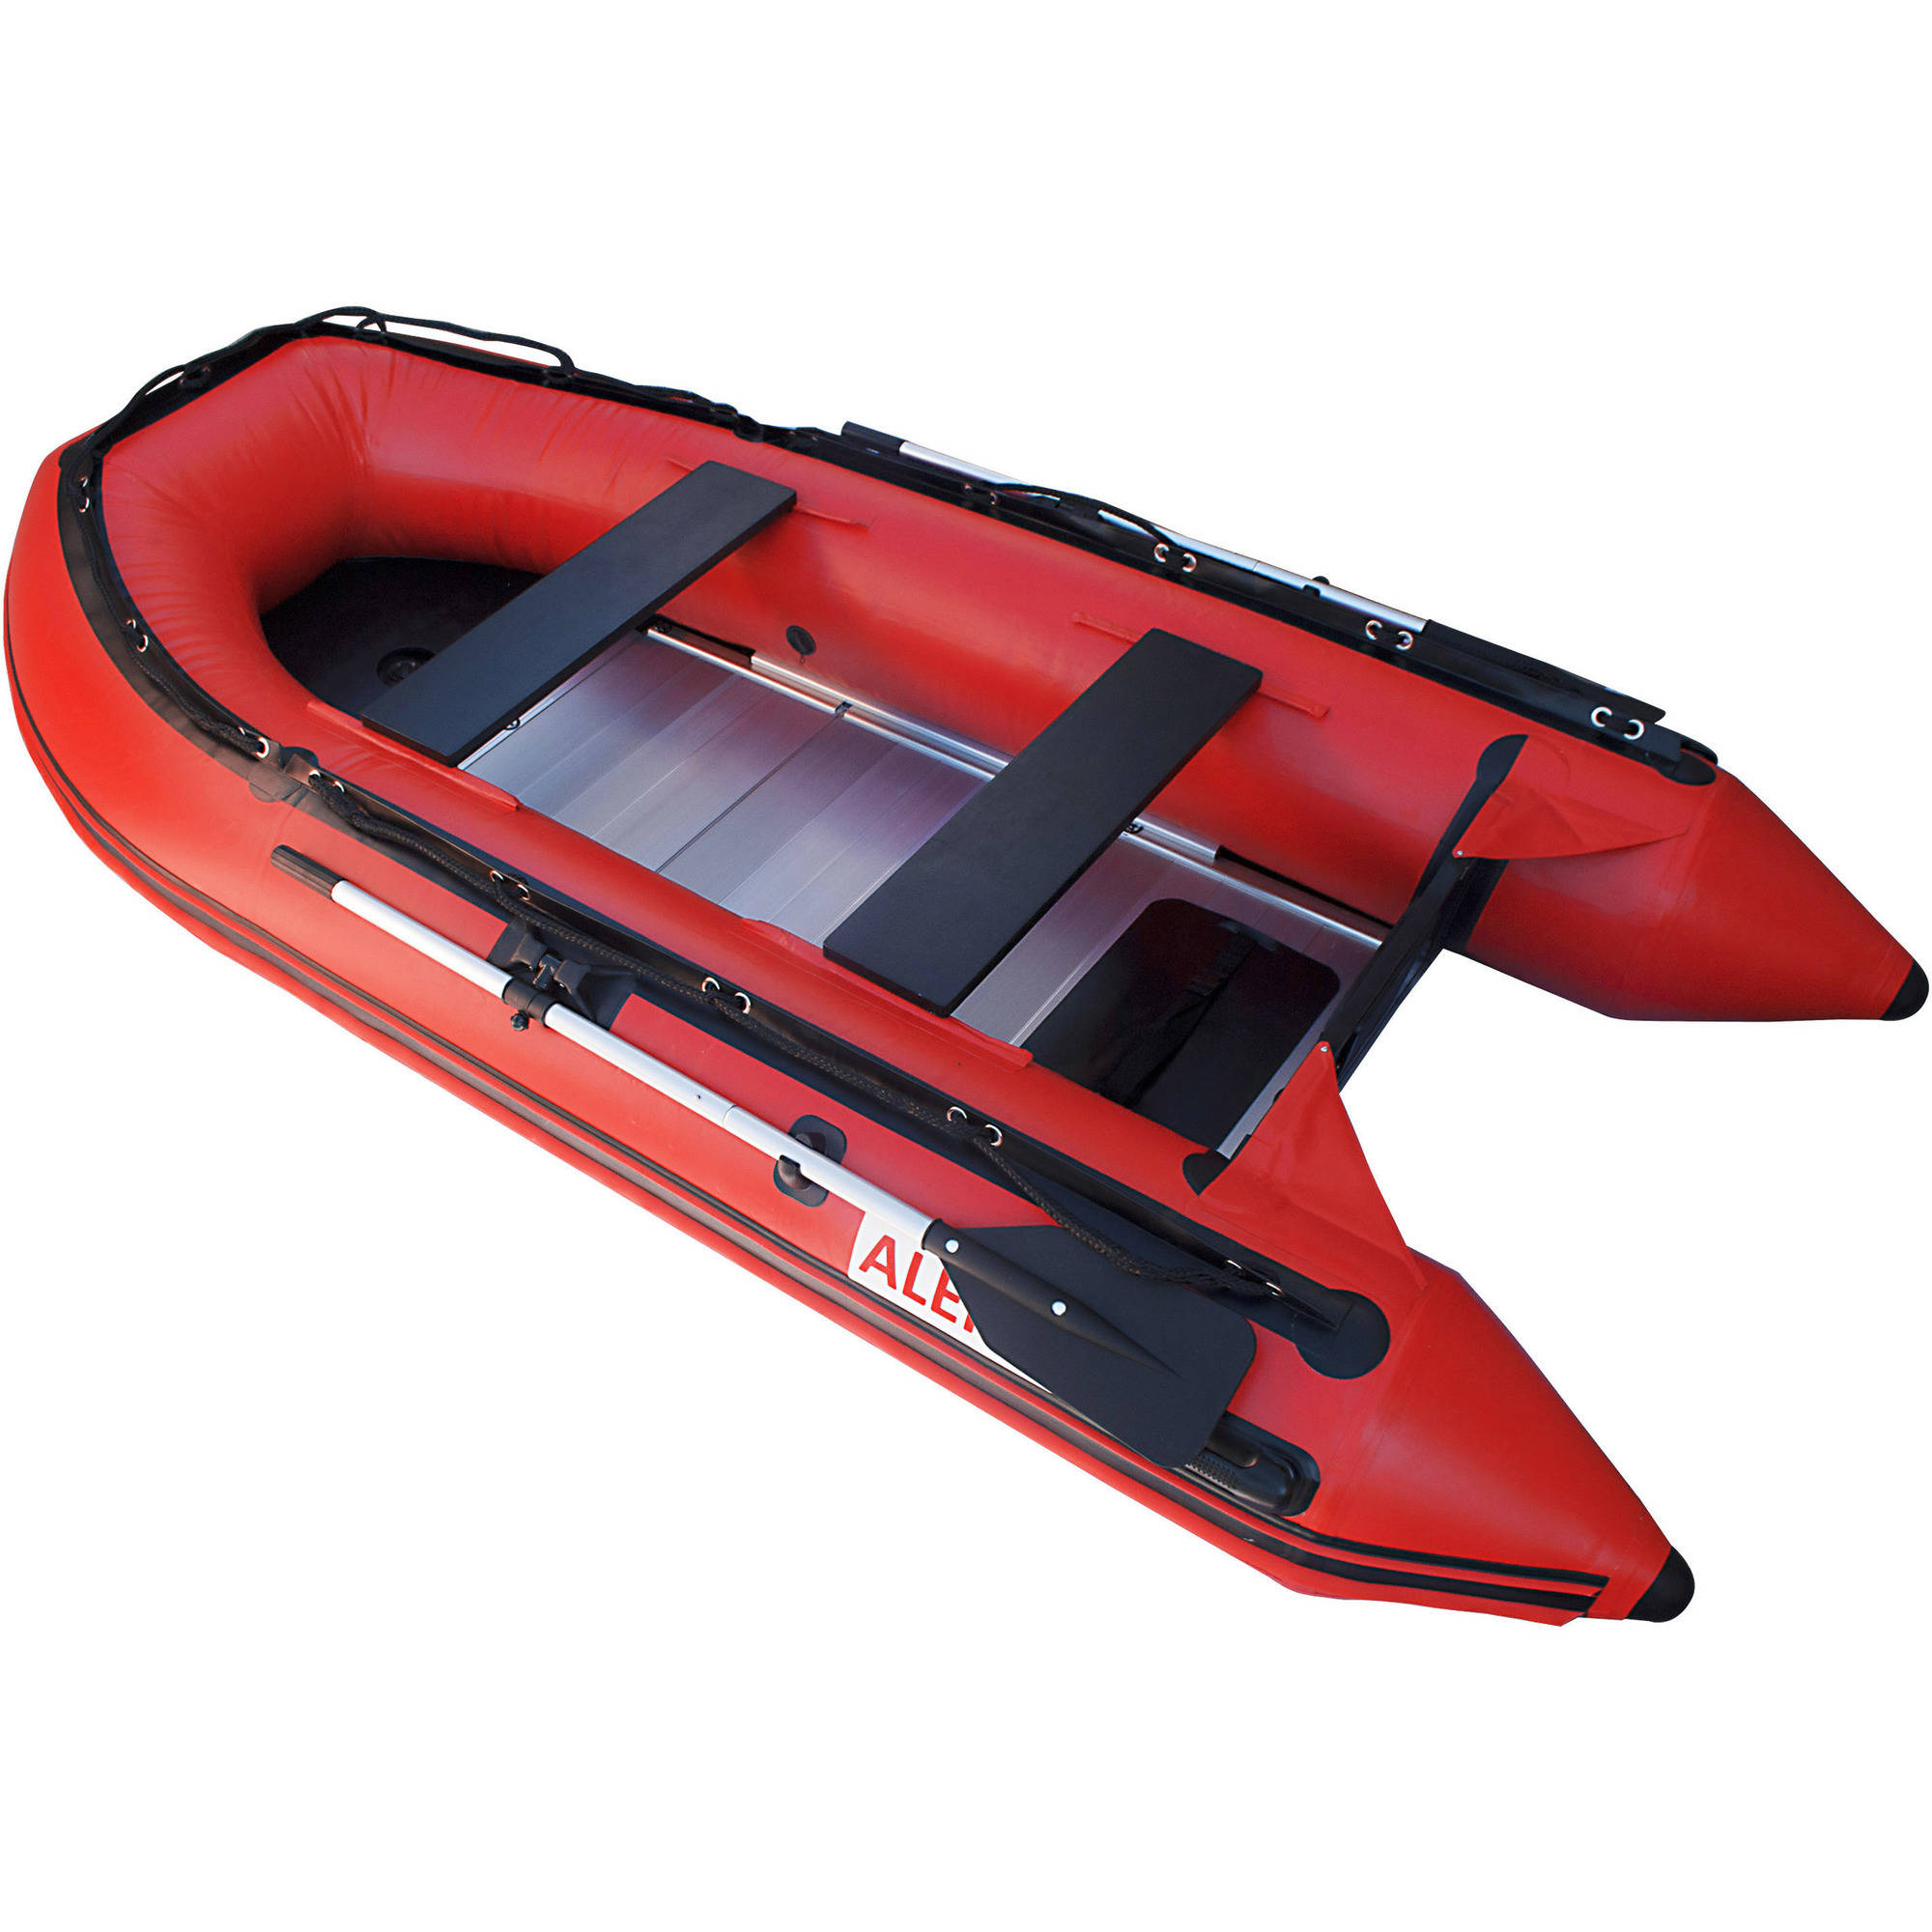 ALEKO Boat 12.5' Inflatable Boat with Aluminum Floor Heavy Duty Design, Red by ALEKO